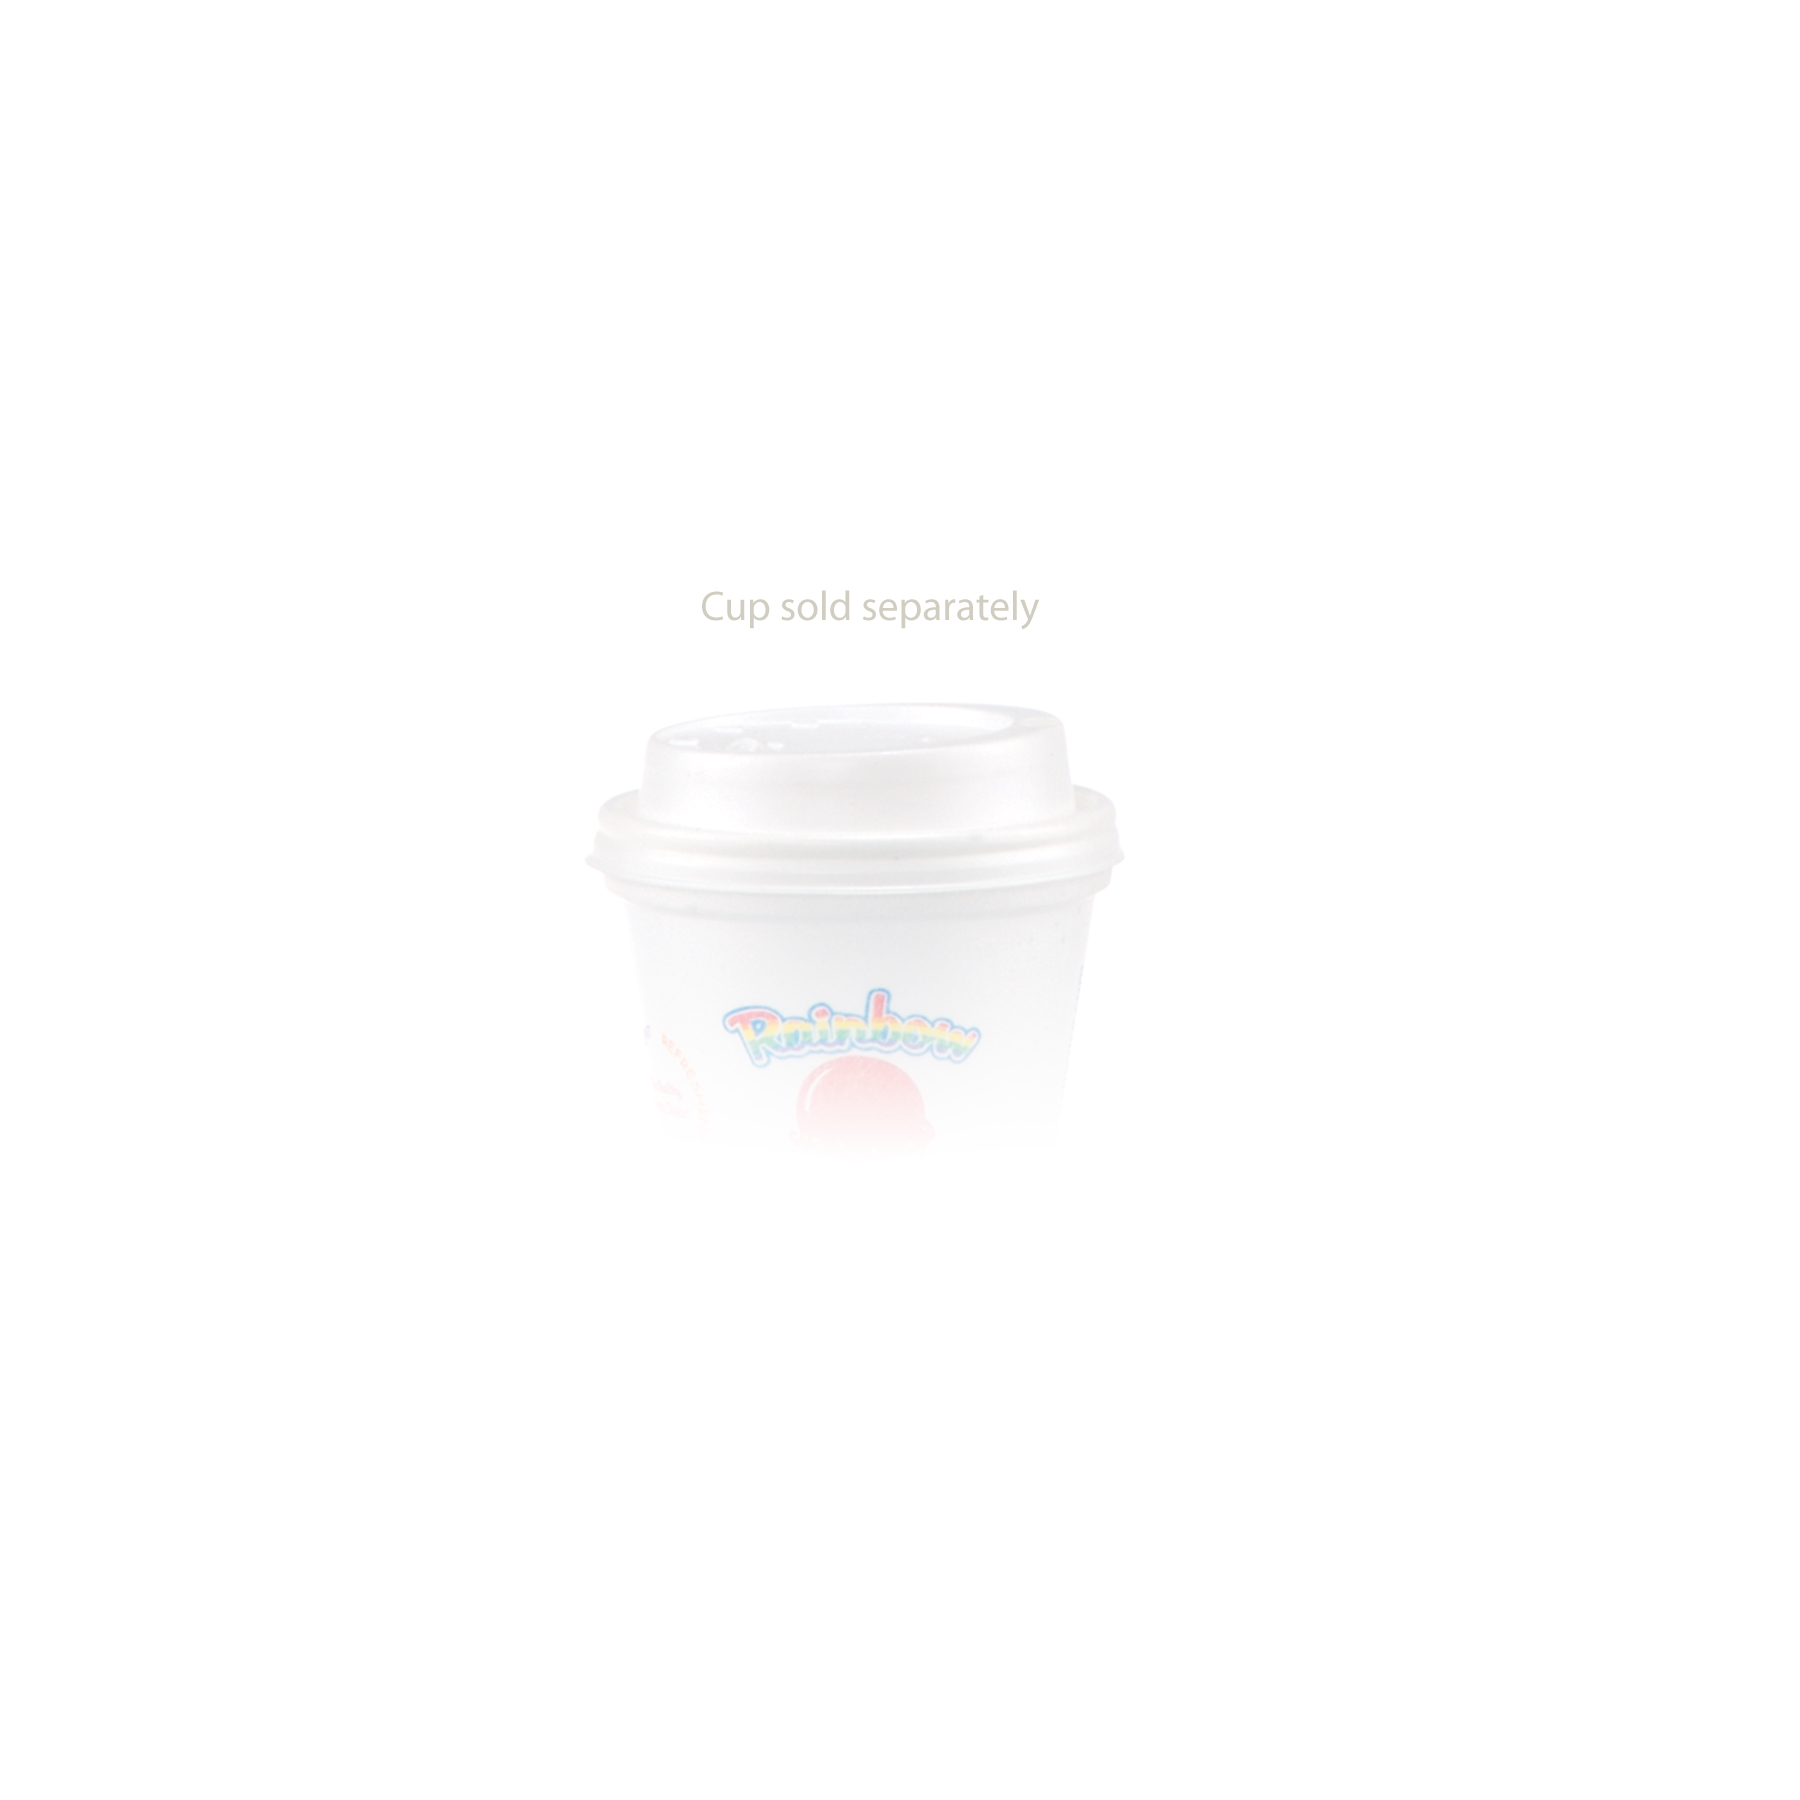 8 oz Foam Cup Domed Lid - White